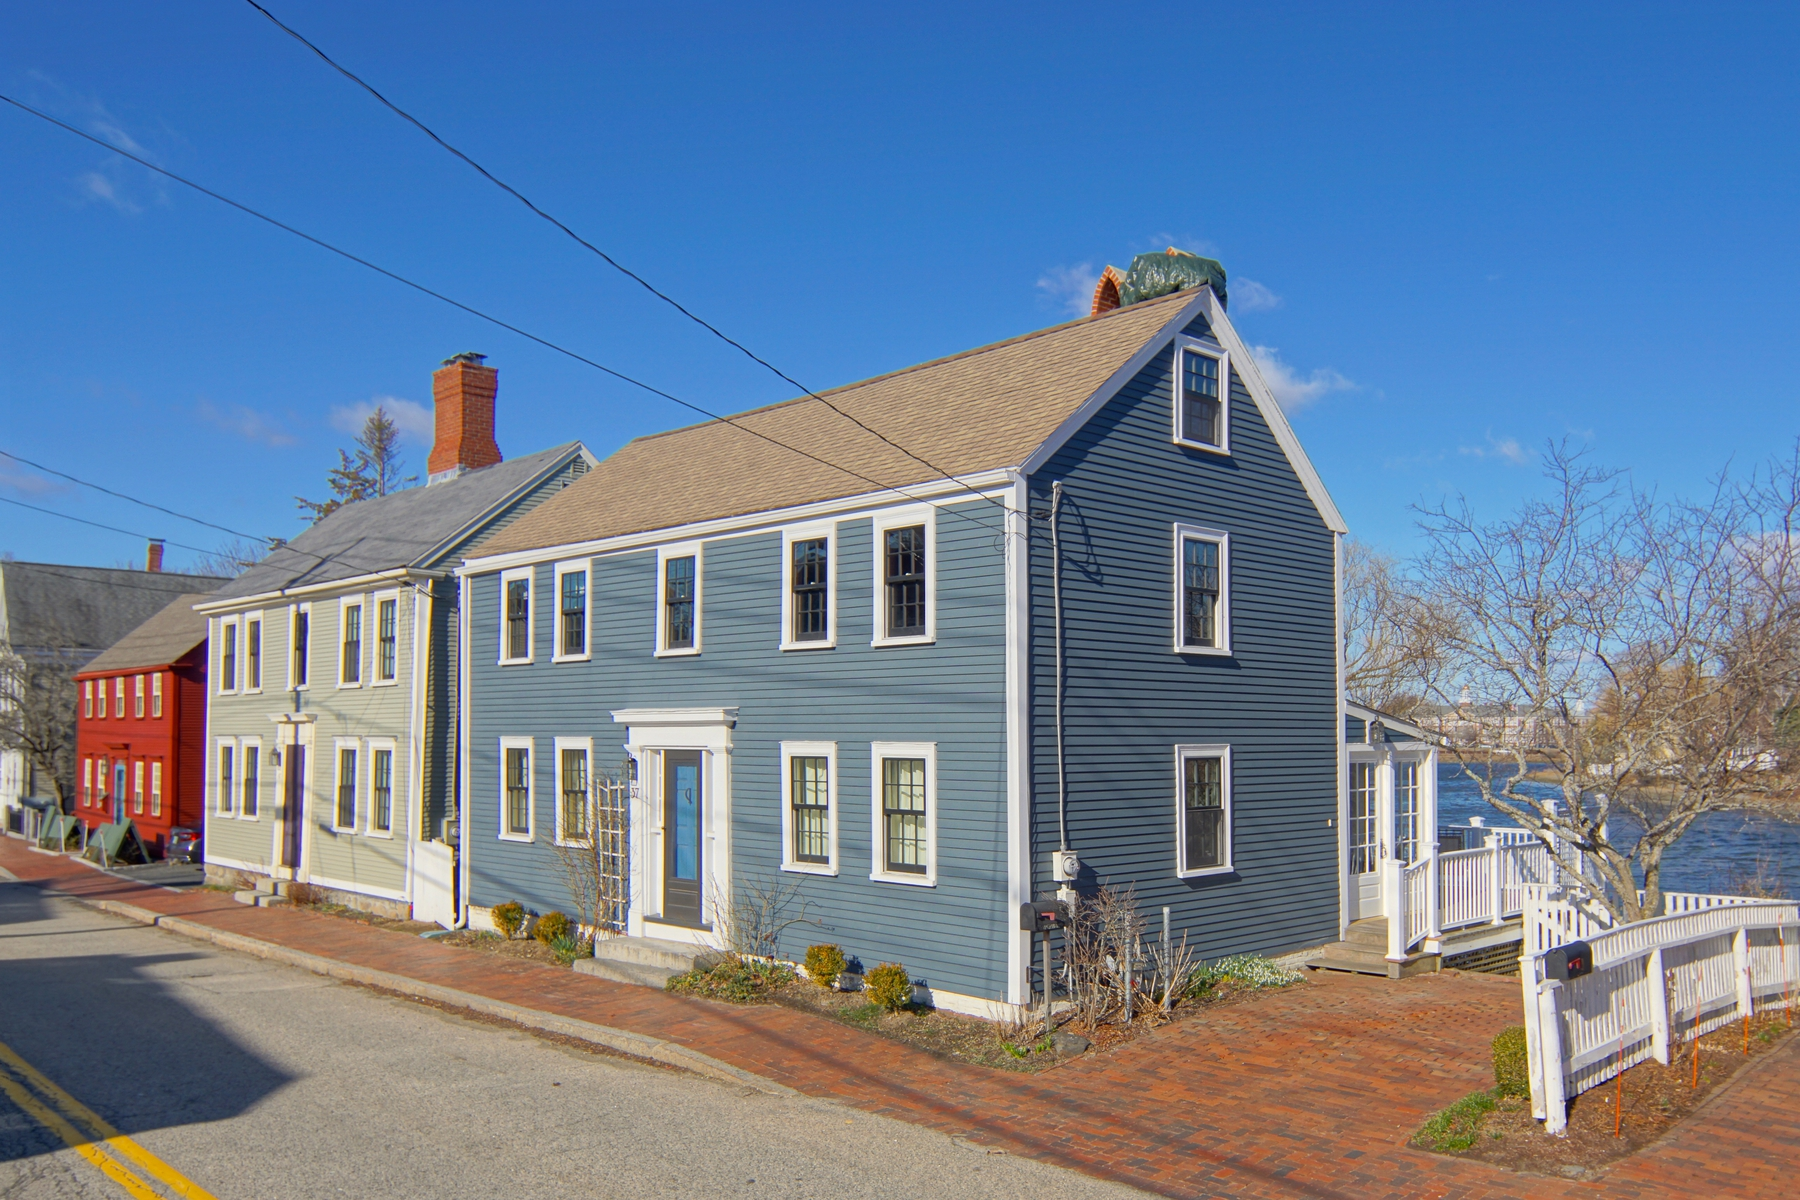 Single Family Home for Sale at On Portsmouth's Pastoral South Mill Pond 37 South Street Portsmouth, New Hampshire 03801 United States